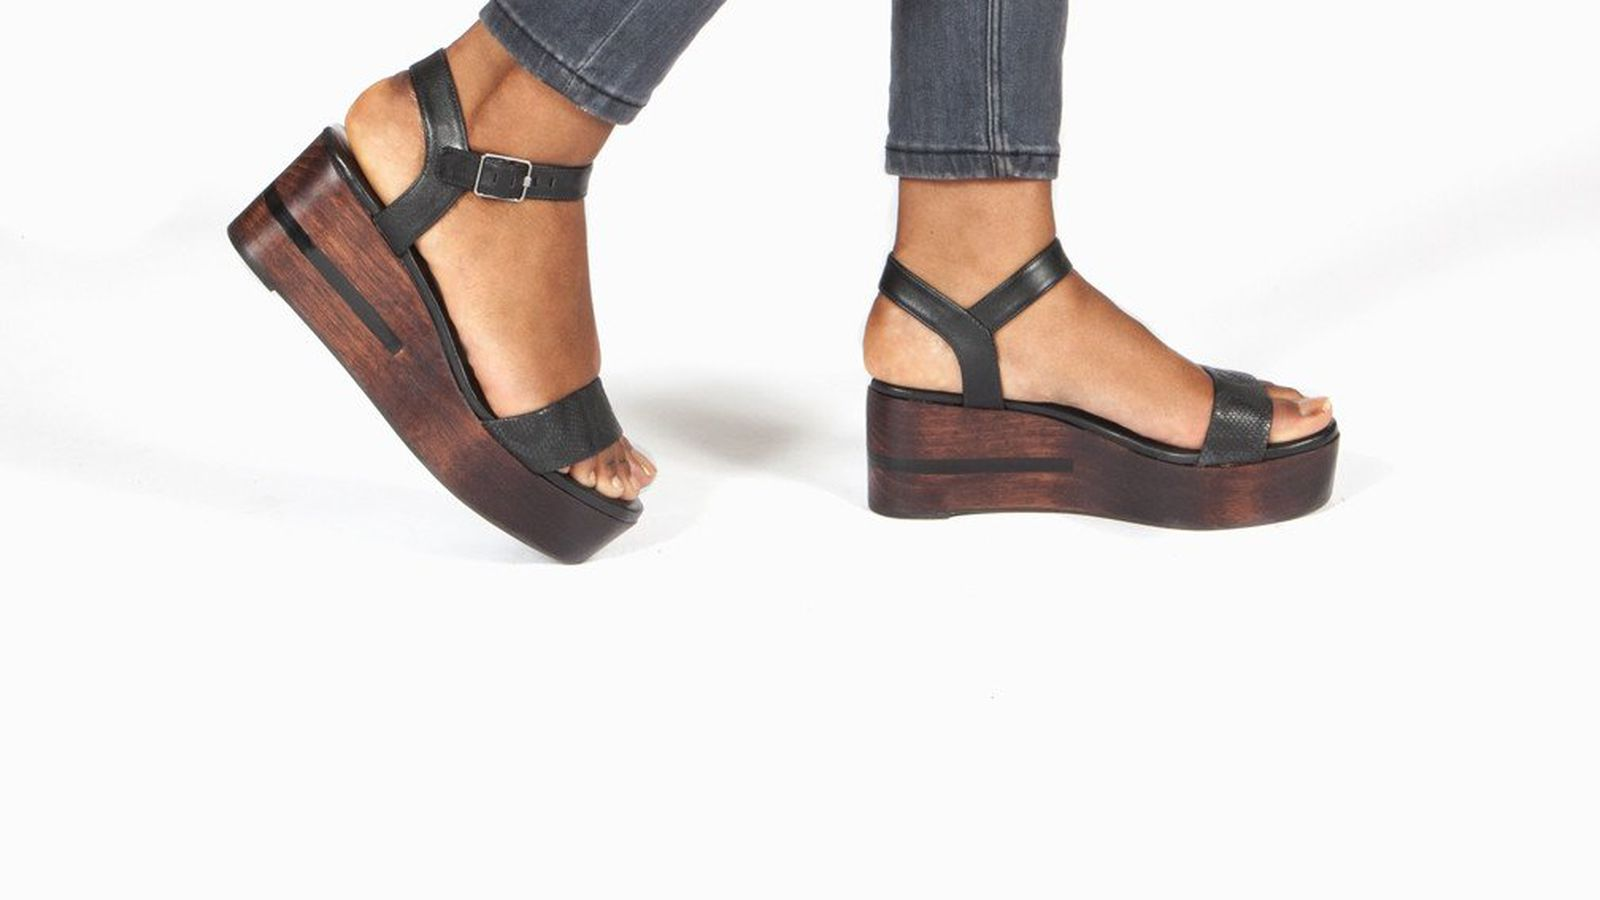 Platform Sandals Are Very Much A Thing Again Racked